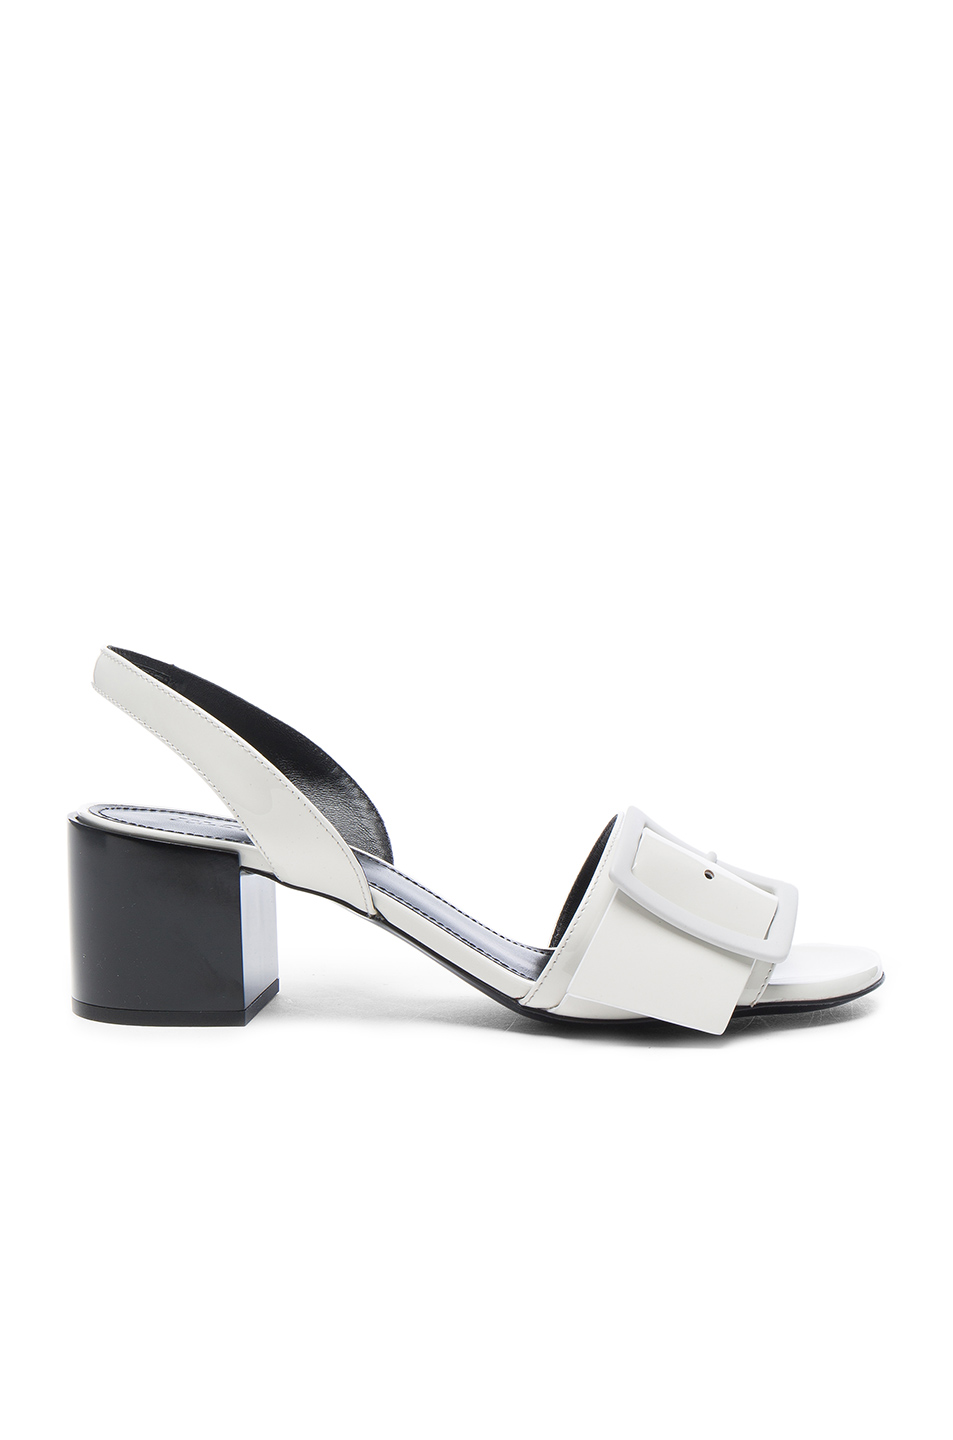 Jil Sander Patent Leather Heels in White